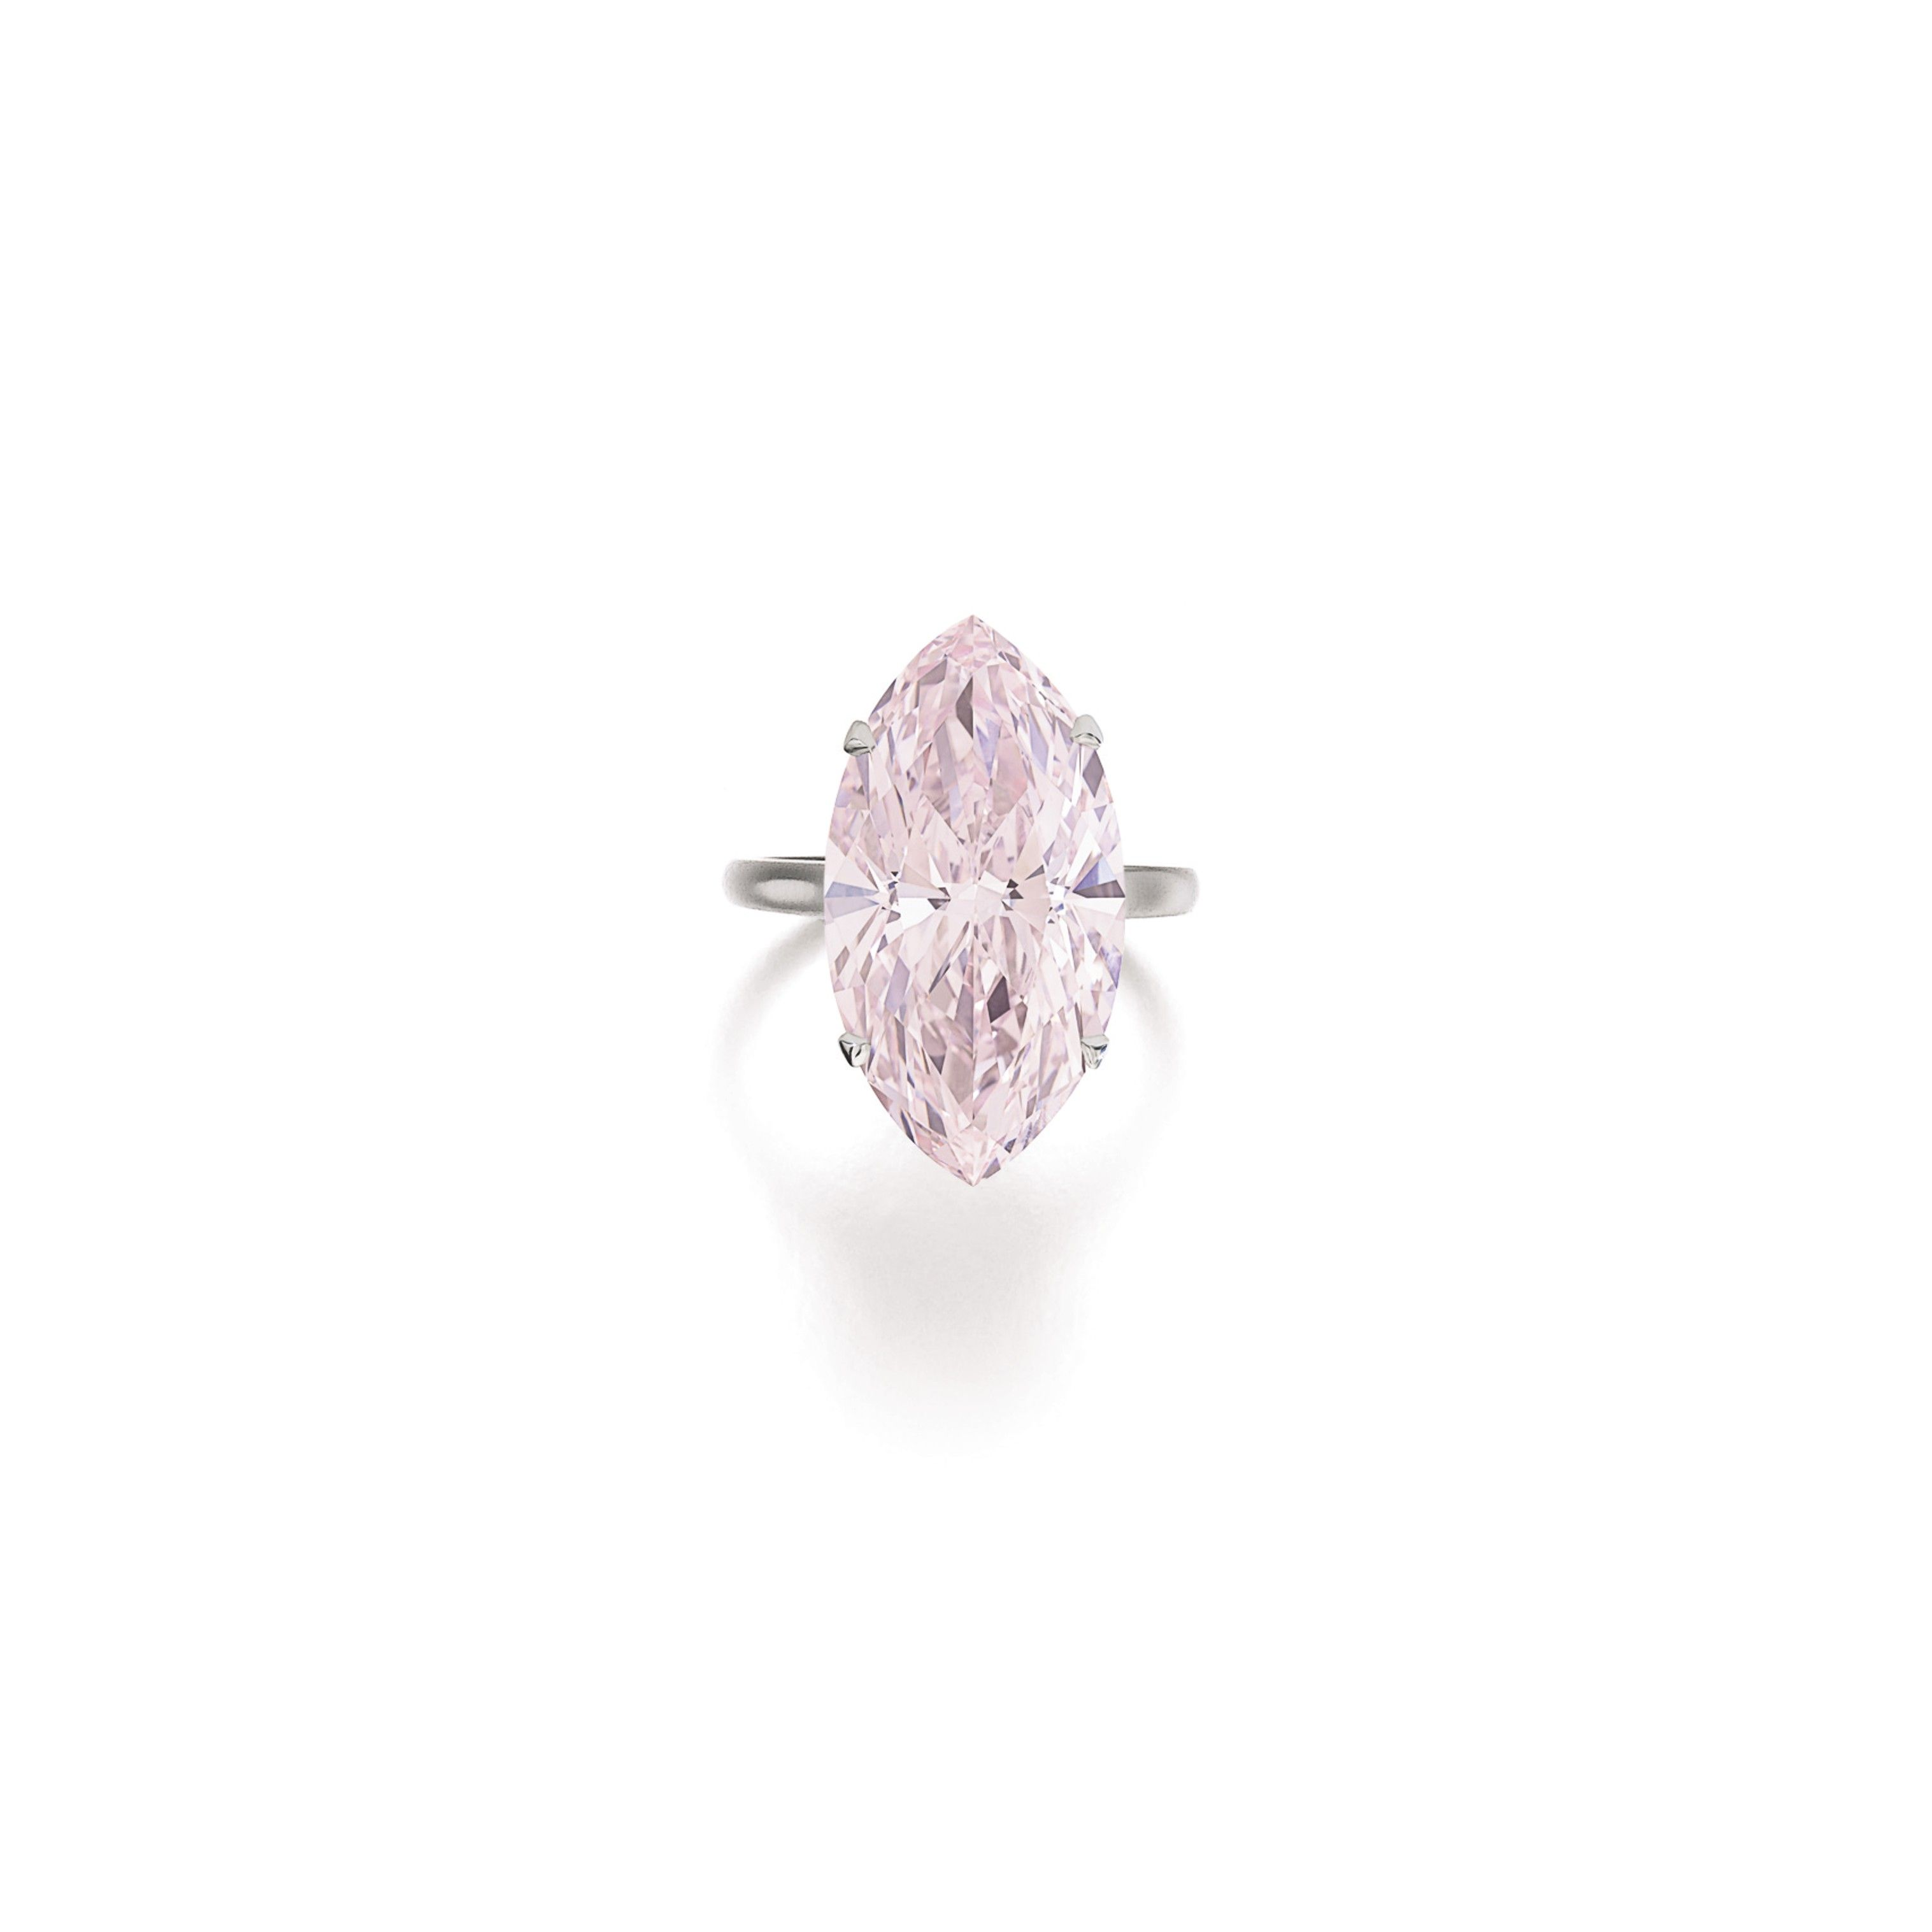 This 12 07 Carat Marquise Cut Pink Diamond Set A Record For Highest Per Carat Price Ever Paid For A Diamond Of That Colour At 655889